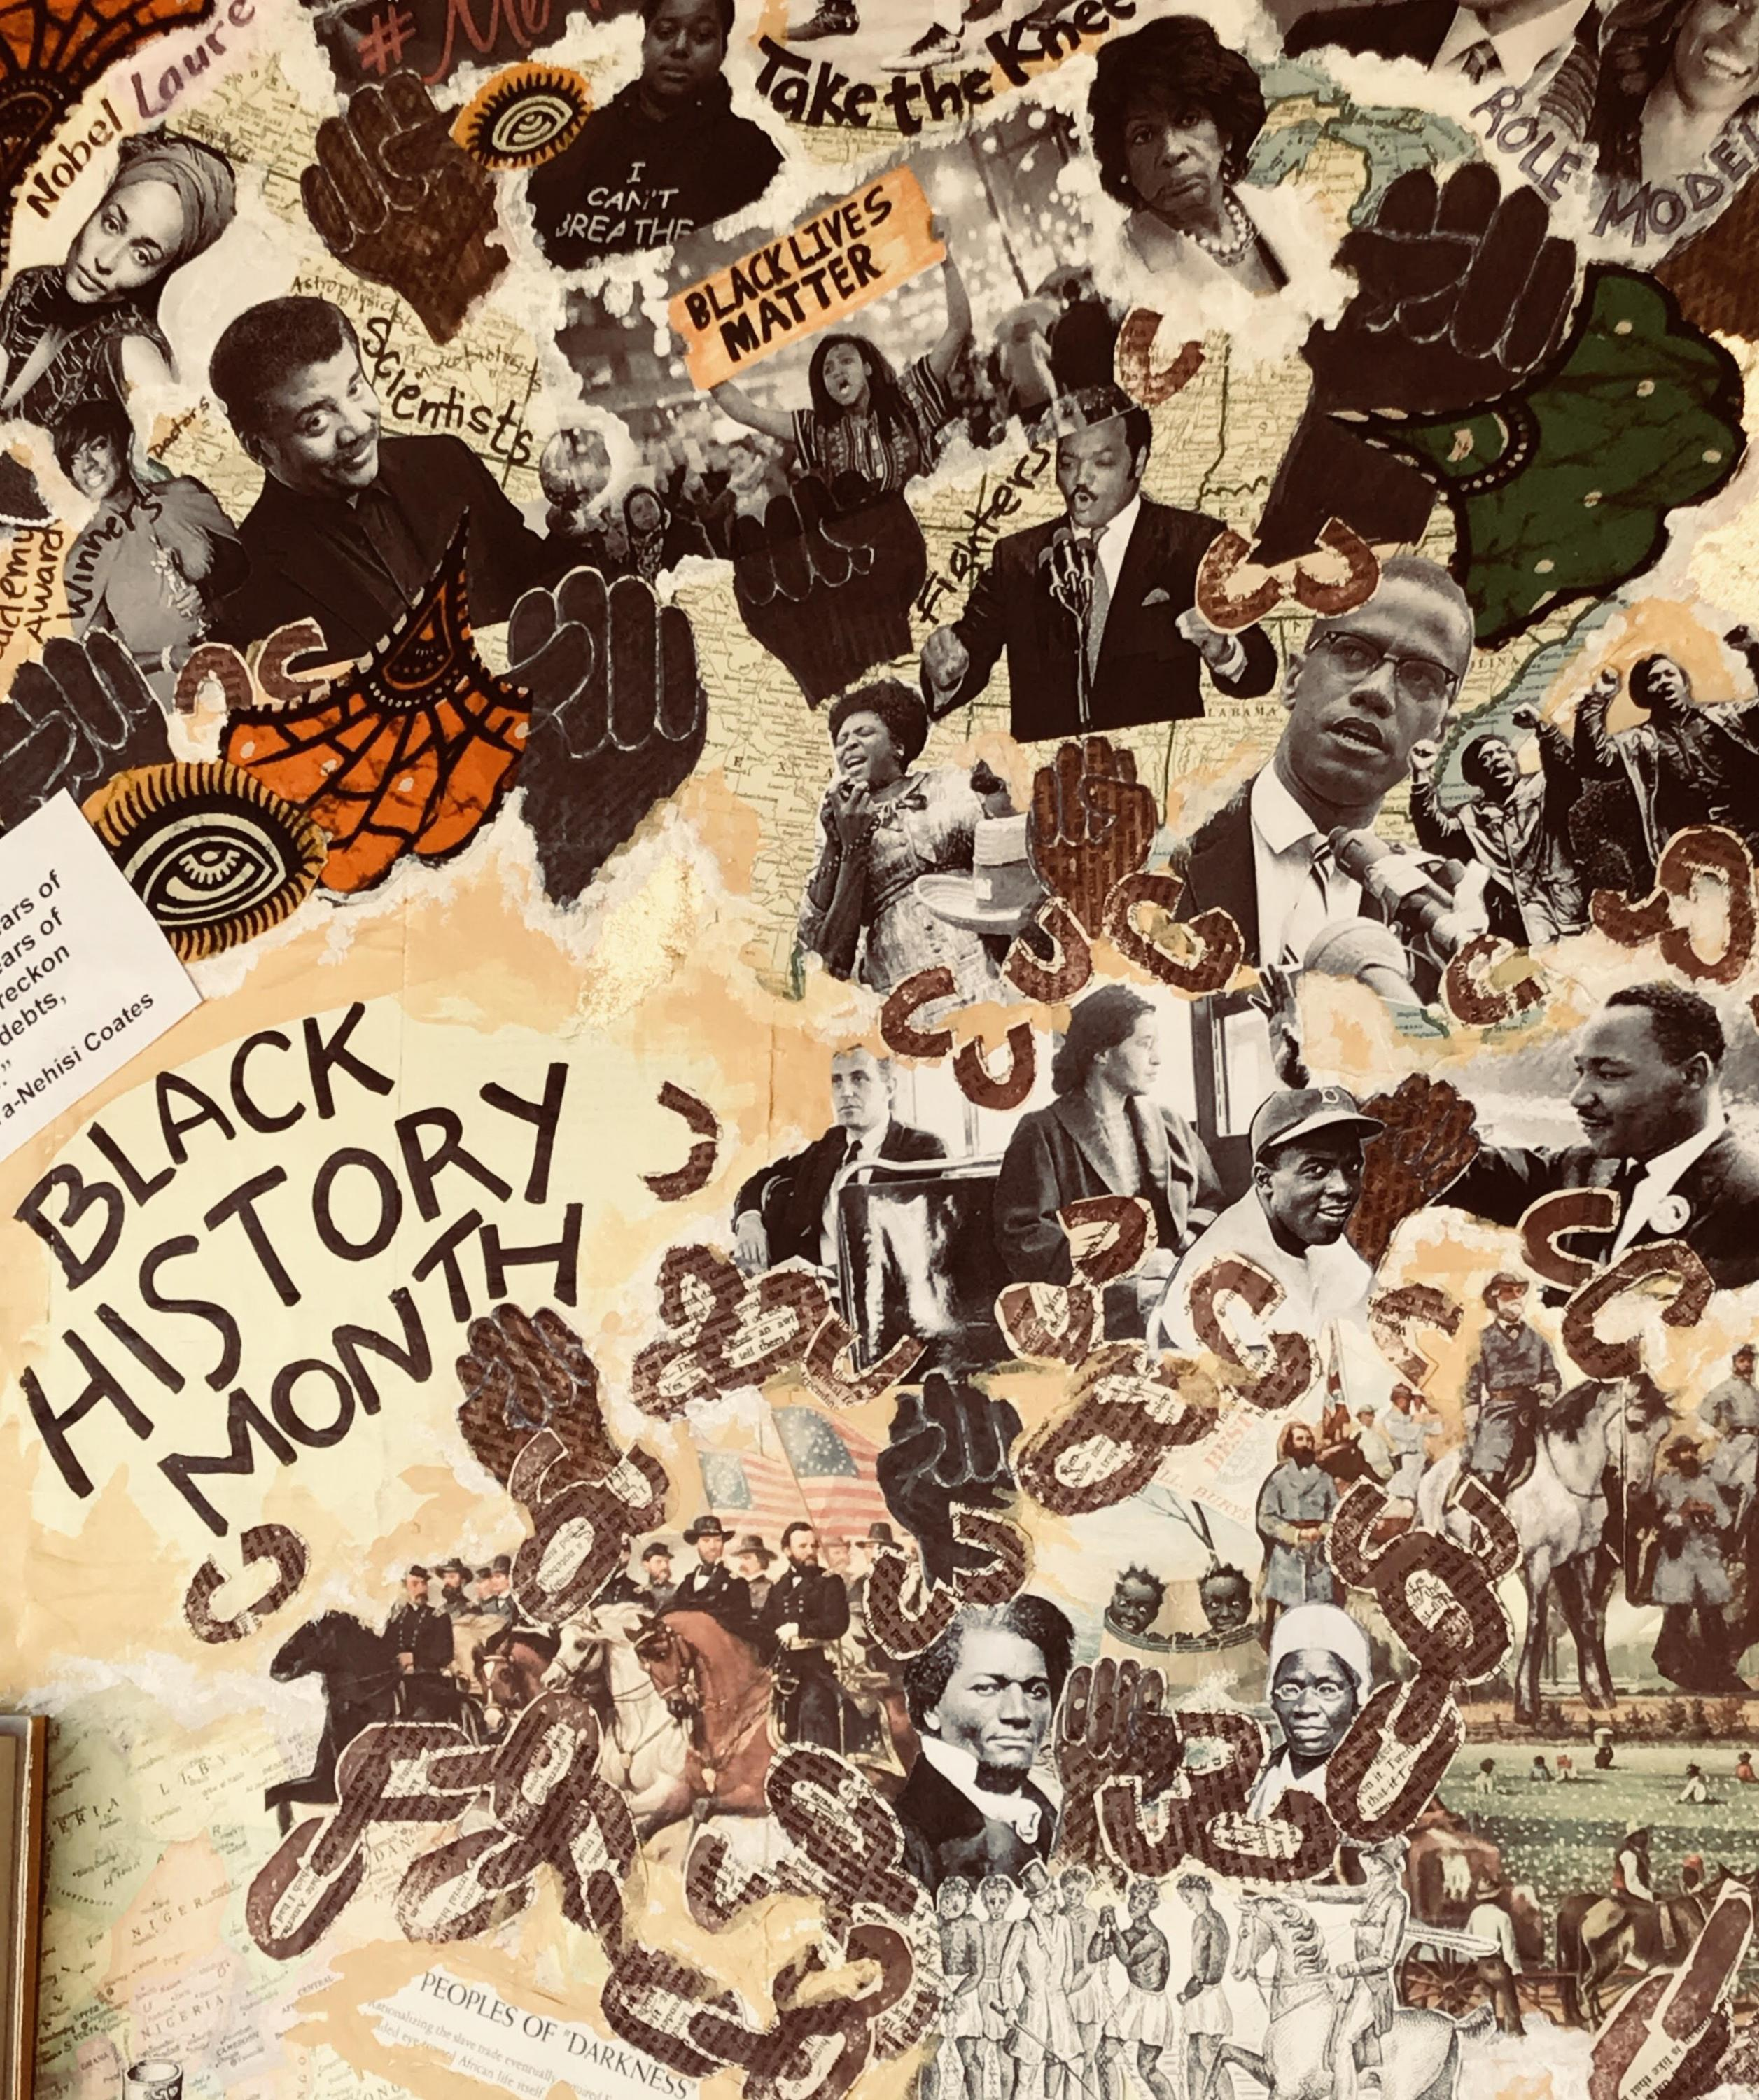 The Black History Month display at the Vermont Book Shop.